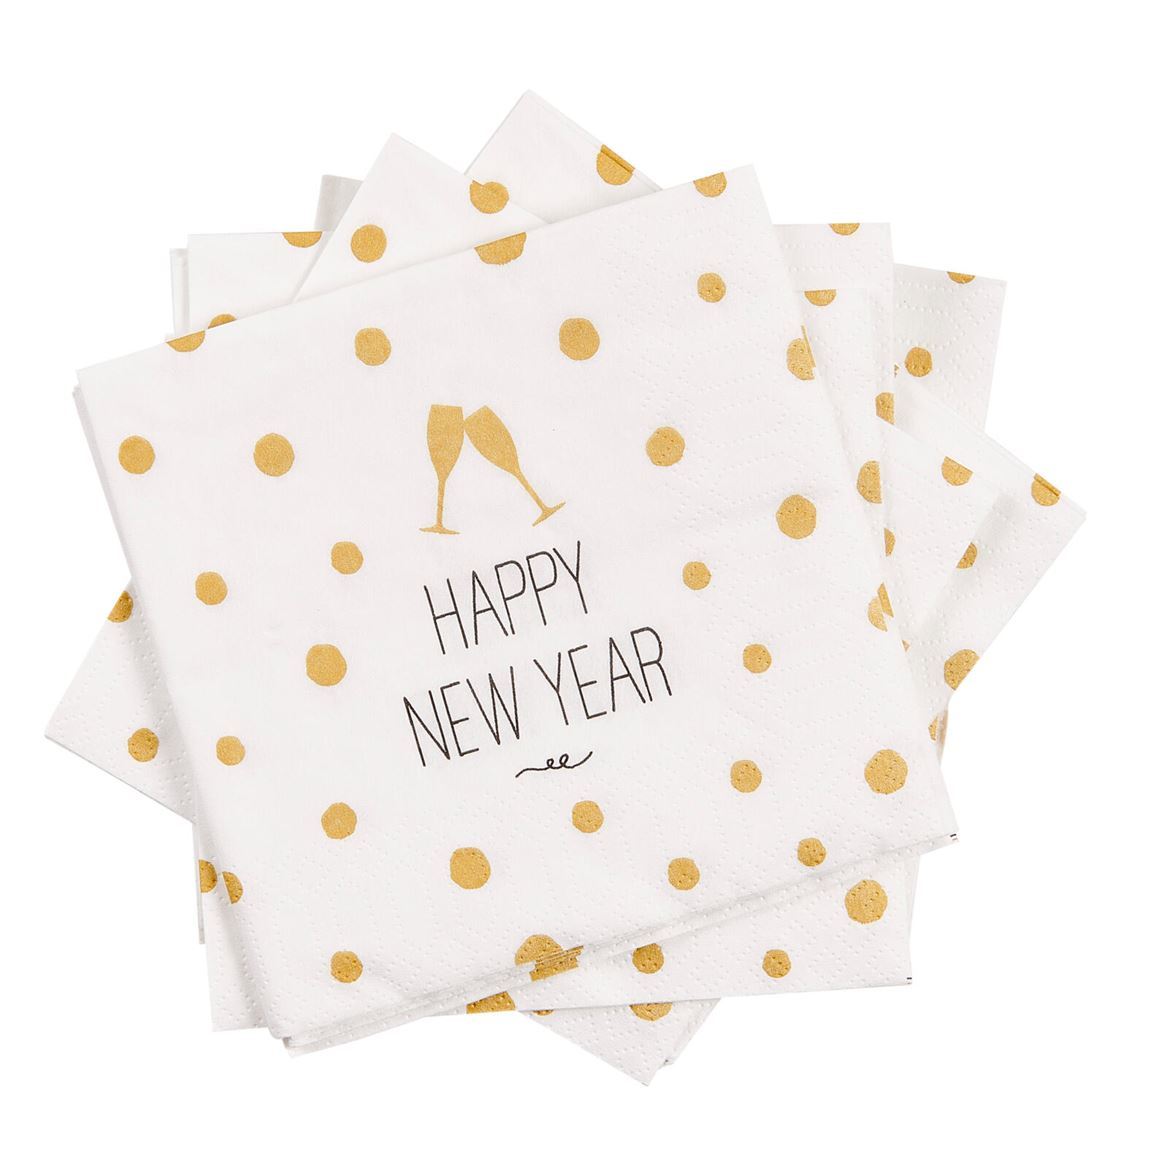 NEW YEAR Paquete de 20 servilletas blanco An. 25 x L 25 cm_new-year-paquete-de-20-servilletas-blanco-an--25-x-l-25-cm